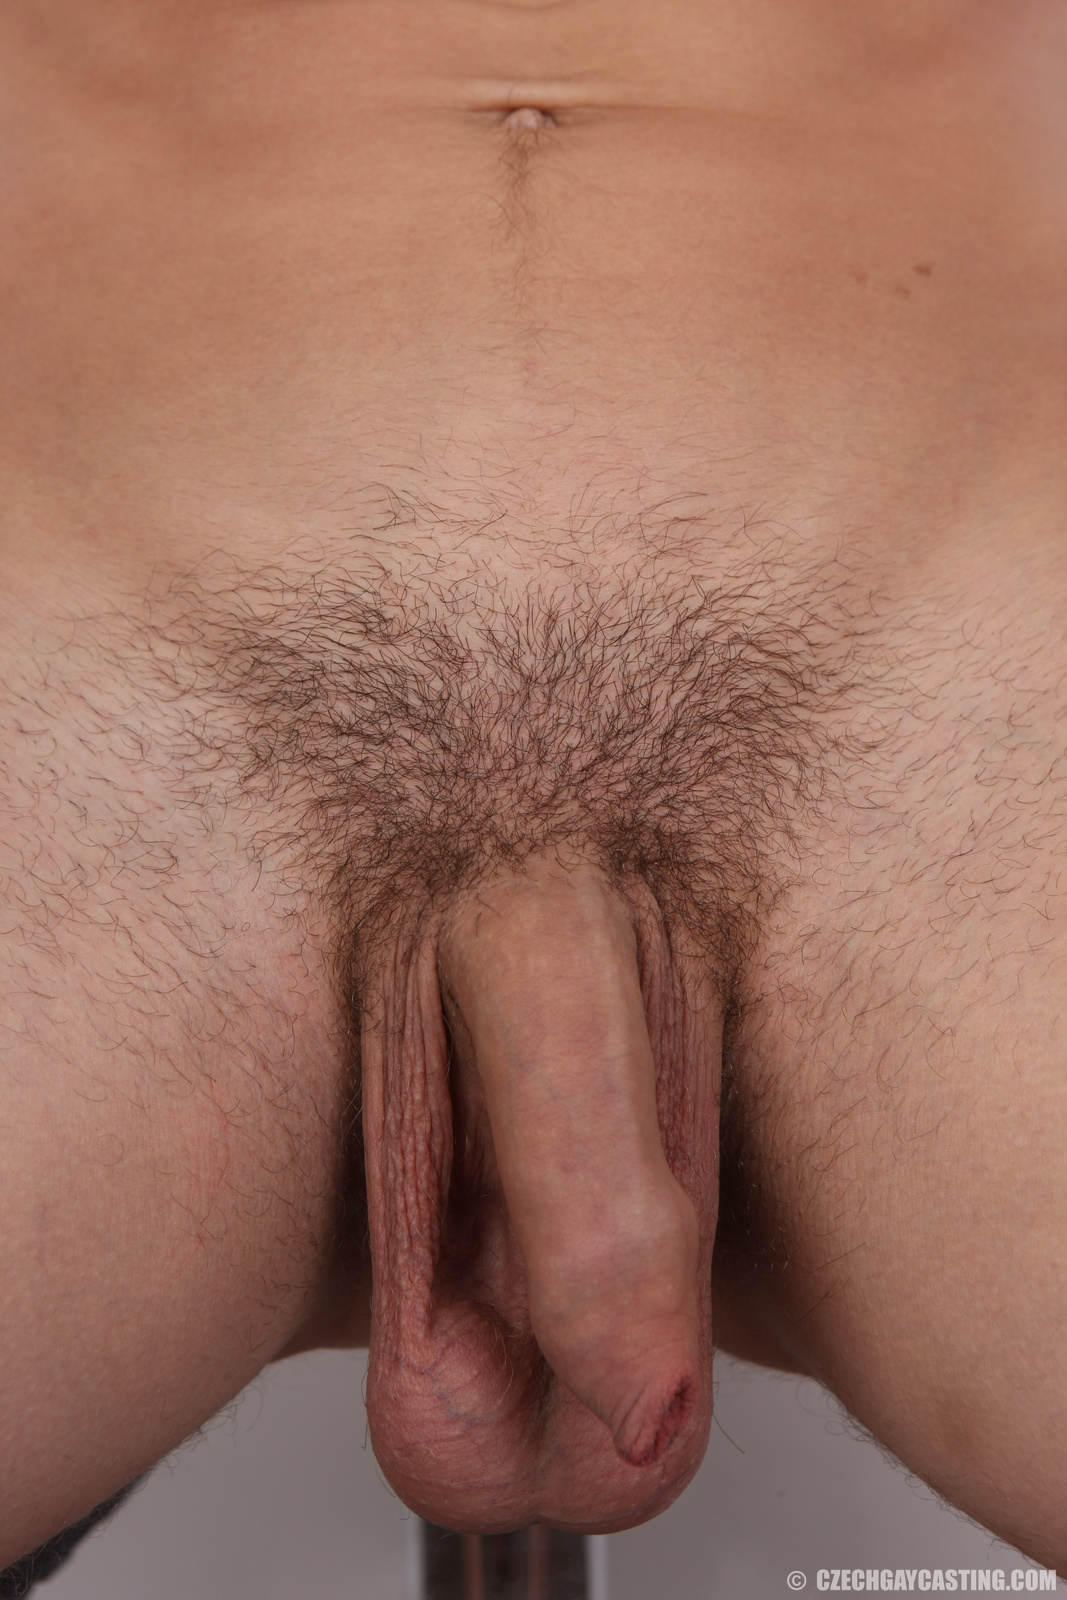 Czech-Gay-Casting-Lukas-Big-Uncut-Cock-With-Foreskin-Amateur-Gay-Porn-20 Amateur Czech Porn Auditions Featuring Huge Uncut Cocks